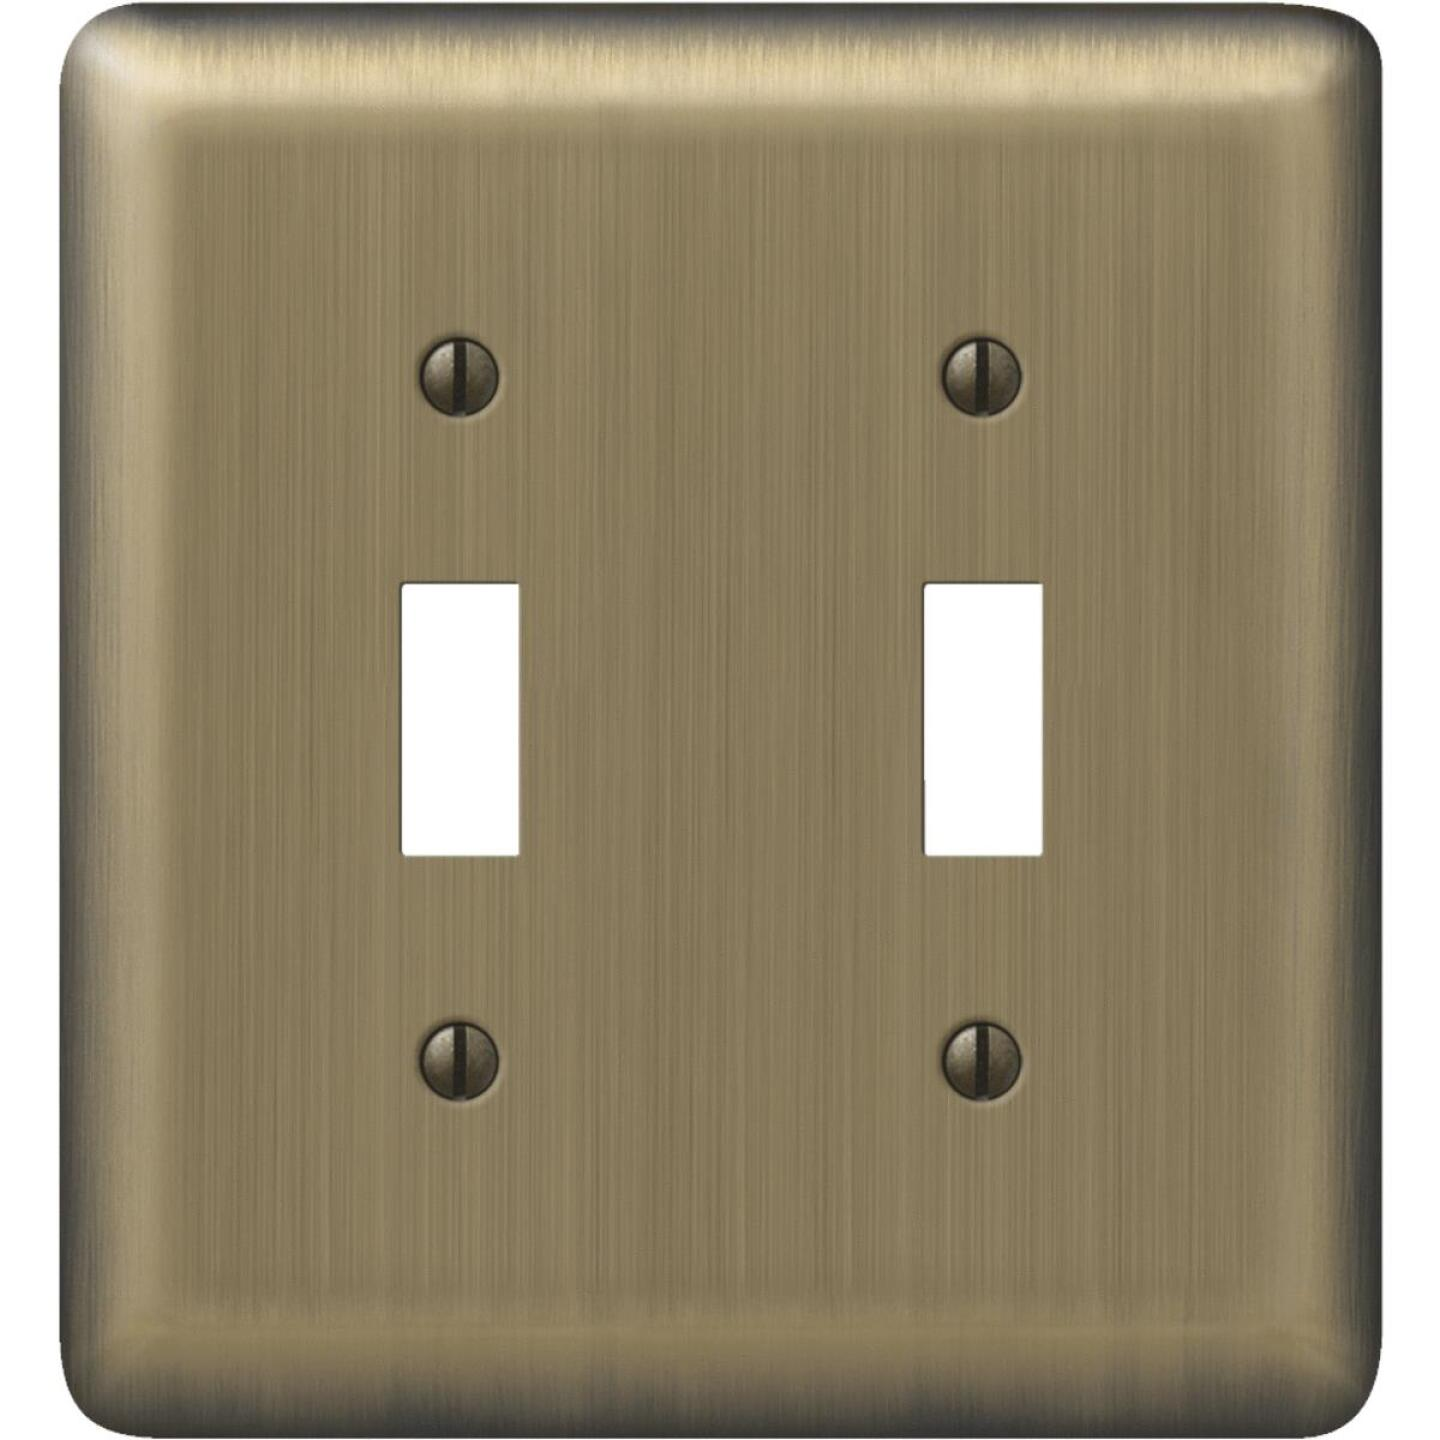 Amerelle 2-Gang Stamped Steel Toggle Switch Wall Plate, Brushed Brass Image 1